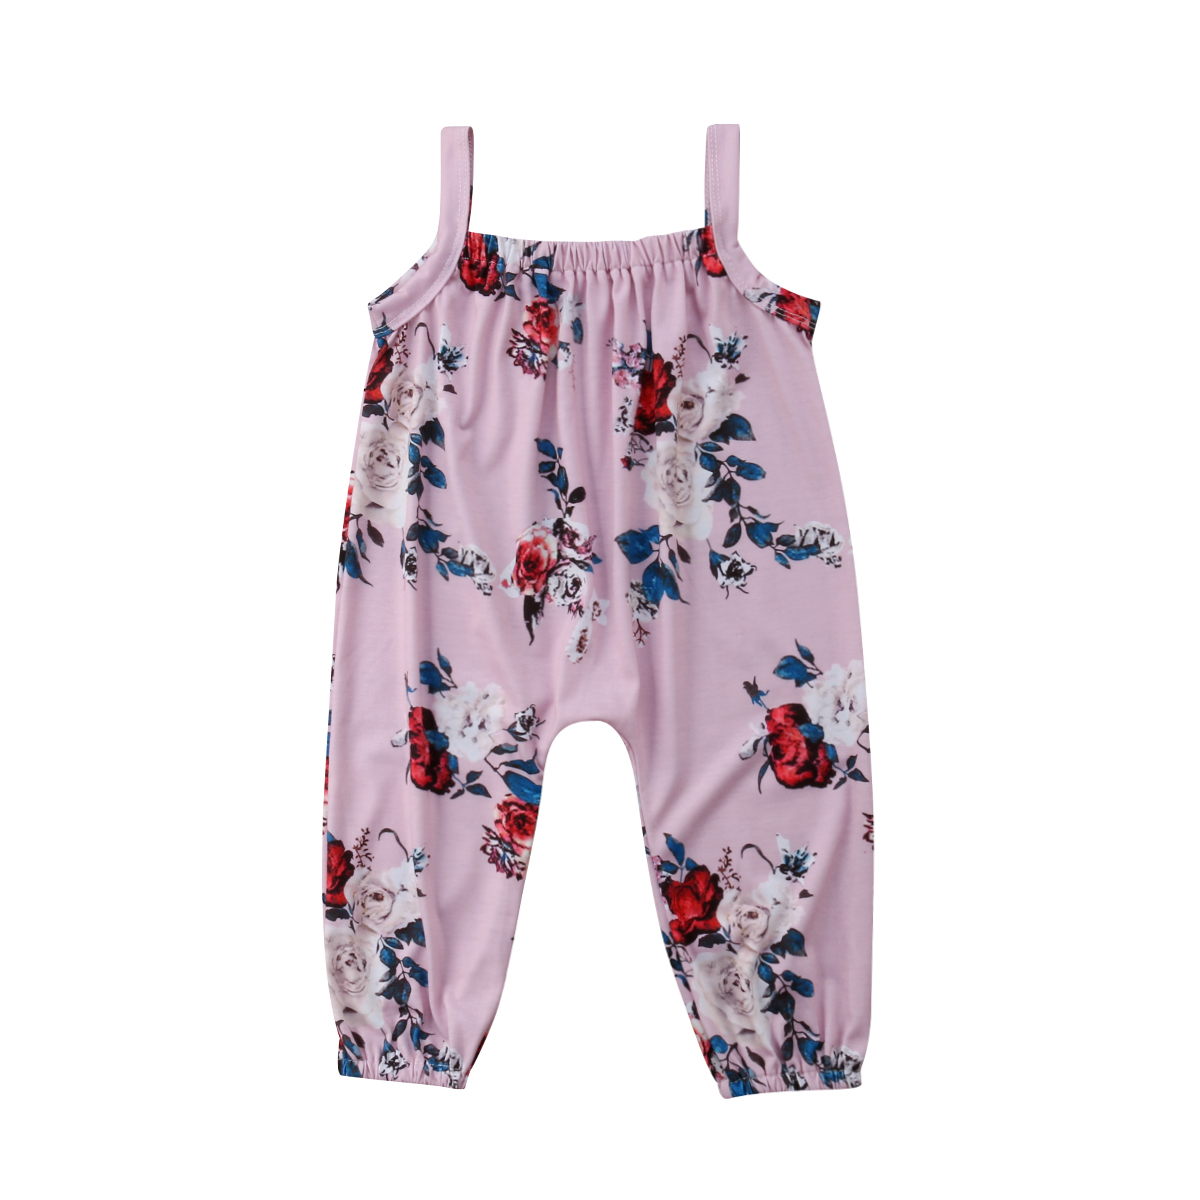 Newborn Infant Baby Girl Romper Playsuit Jumpsuit Outfits Cotton Sunsuit Sleeveless Floral Clothes Toddle Girl 0-24M